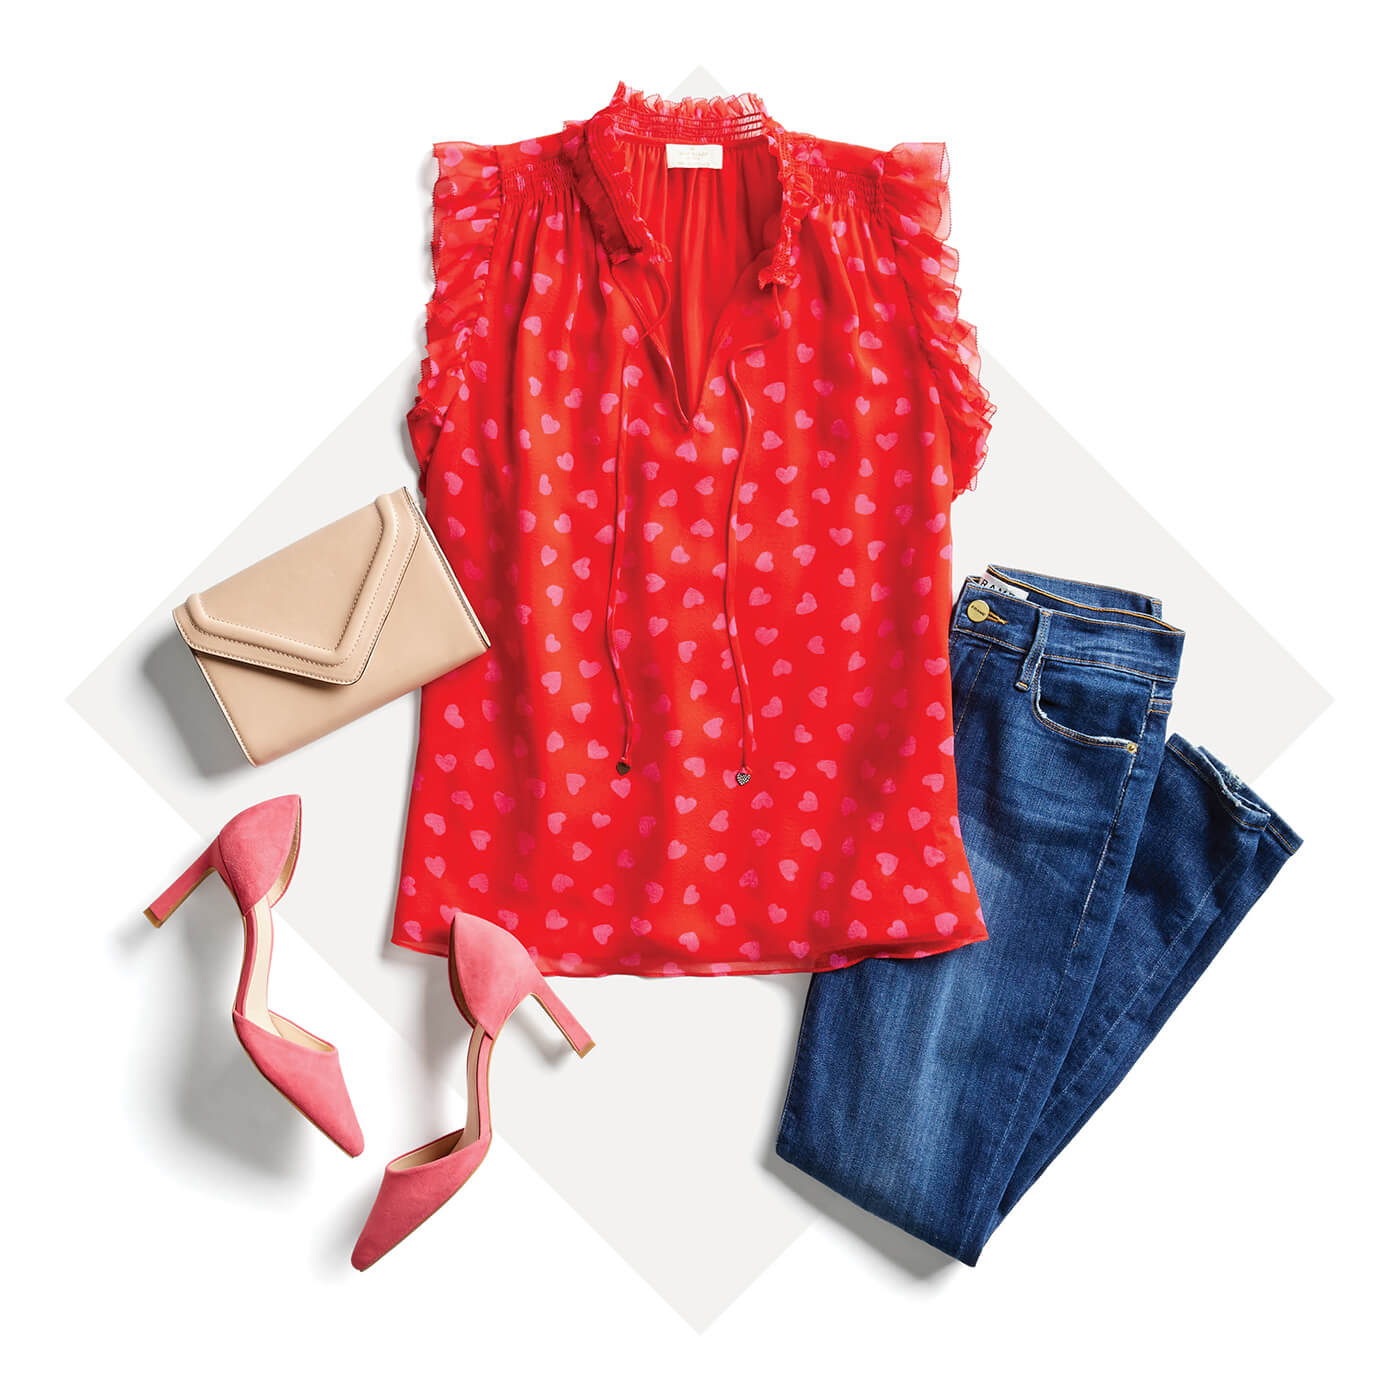 red sleeveless blouse and jeans